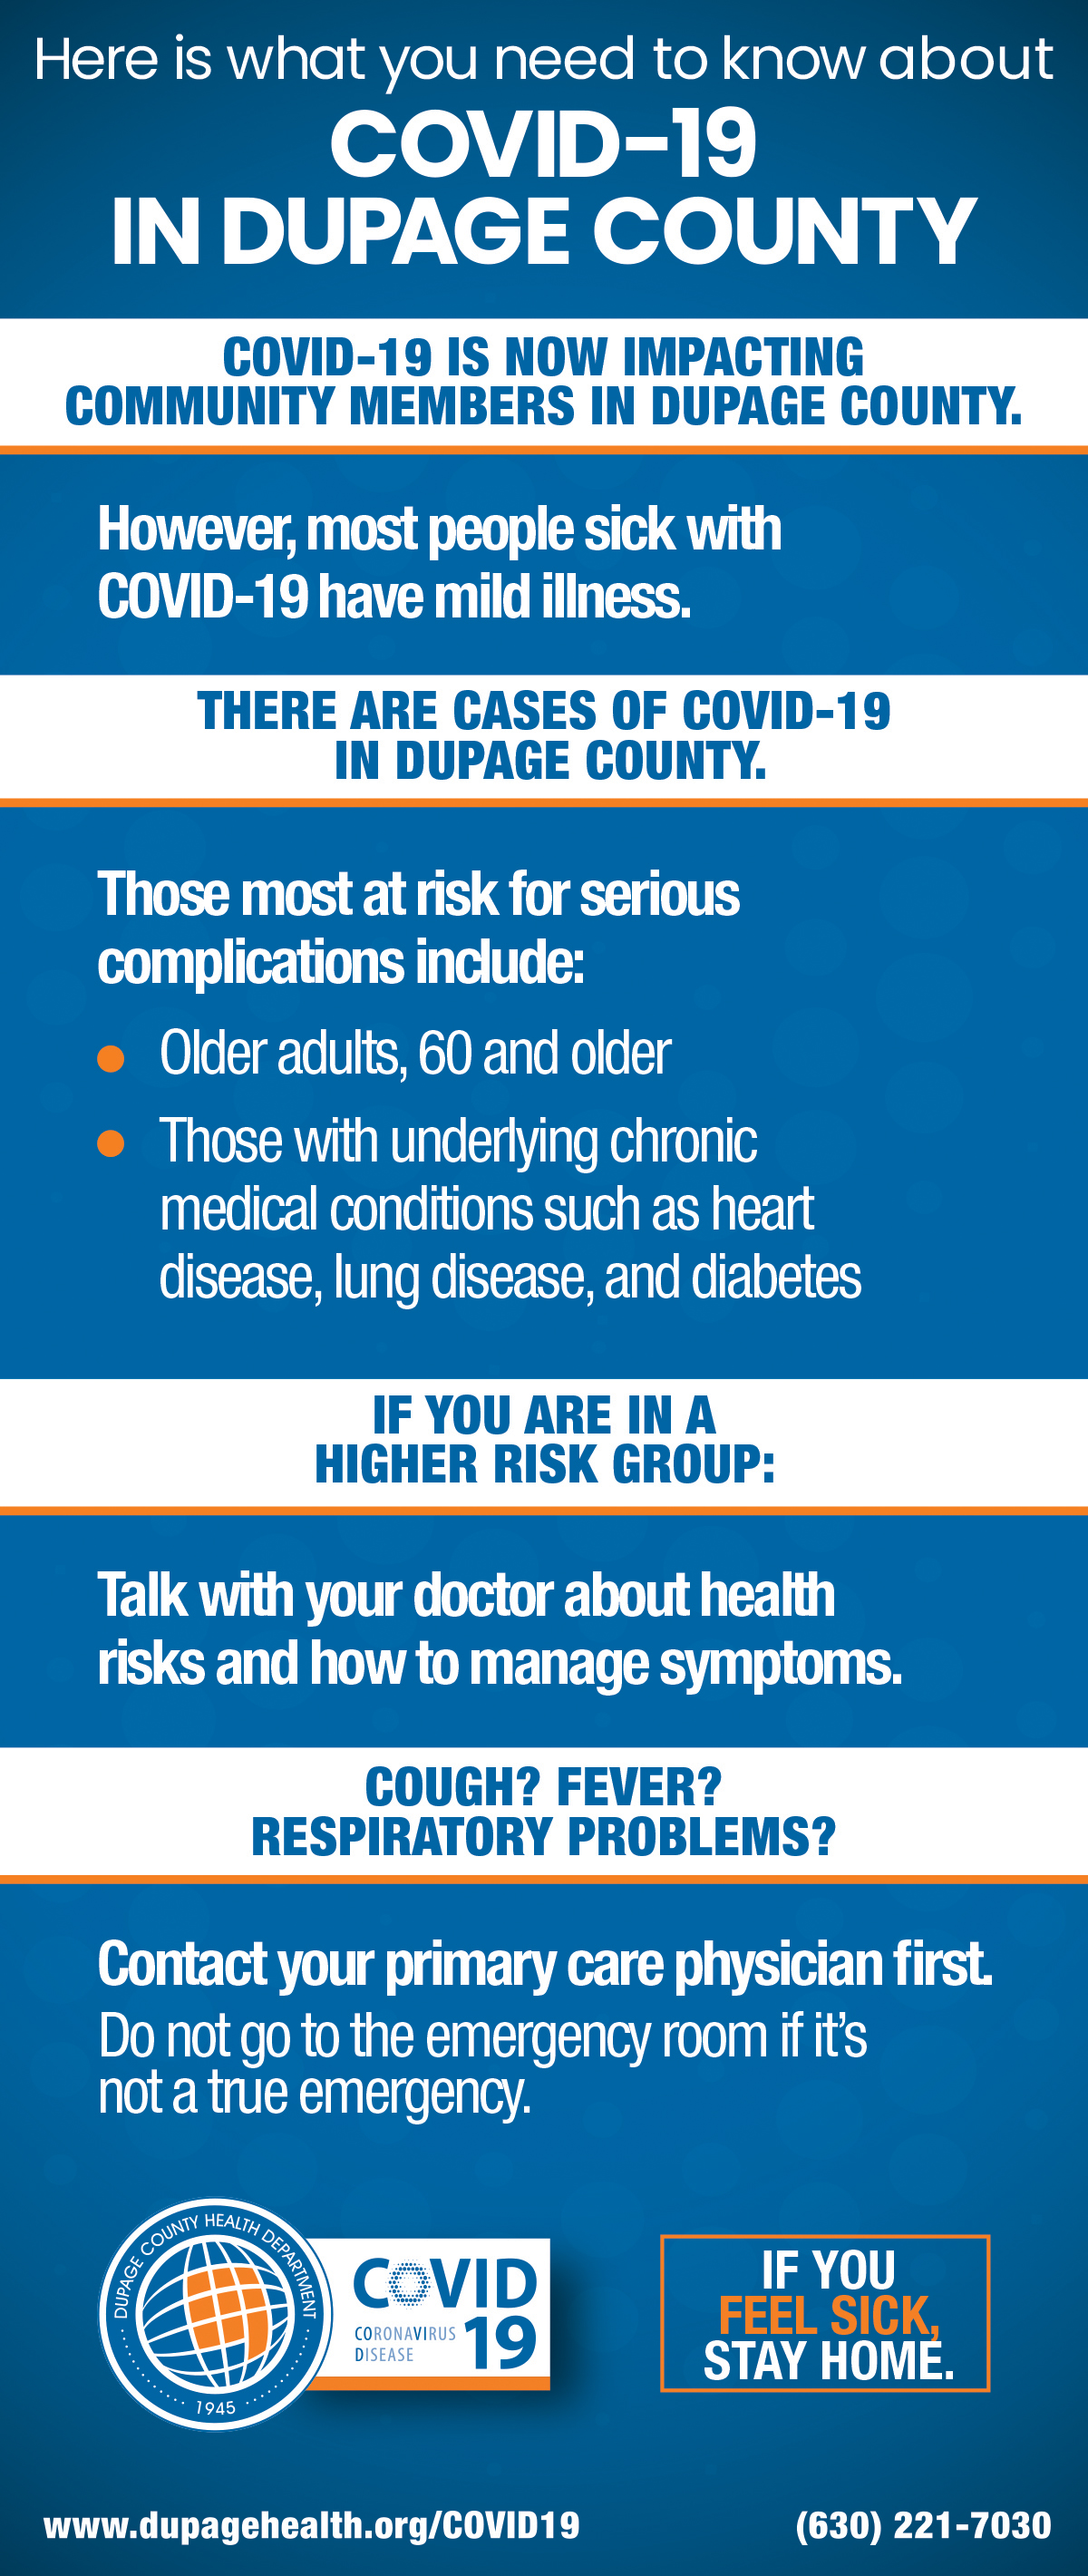 Here is what you need to know about COVID-19 infographic